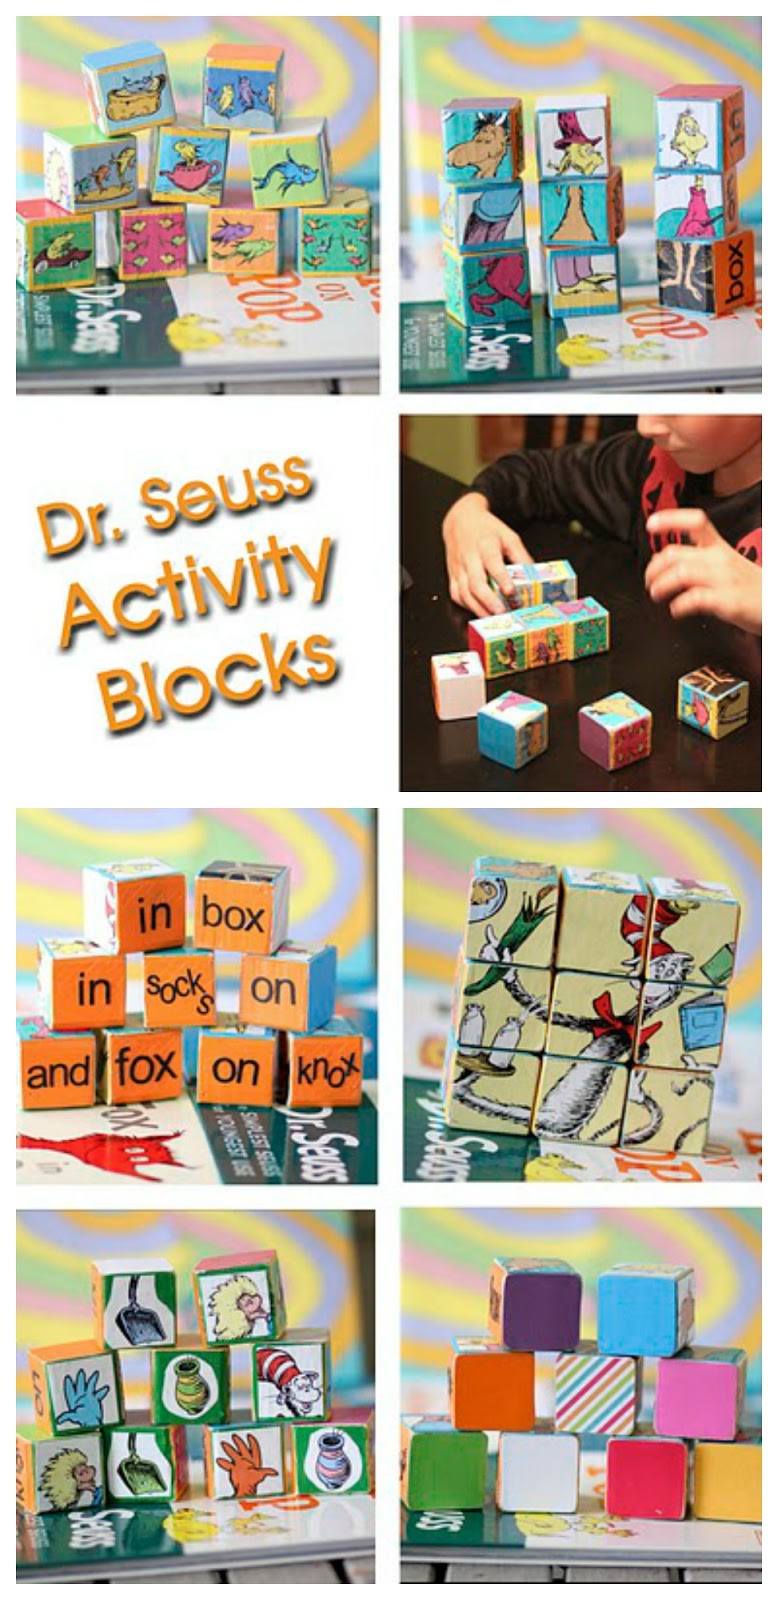 dr+seuss+activity+blogs.jpg